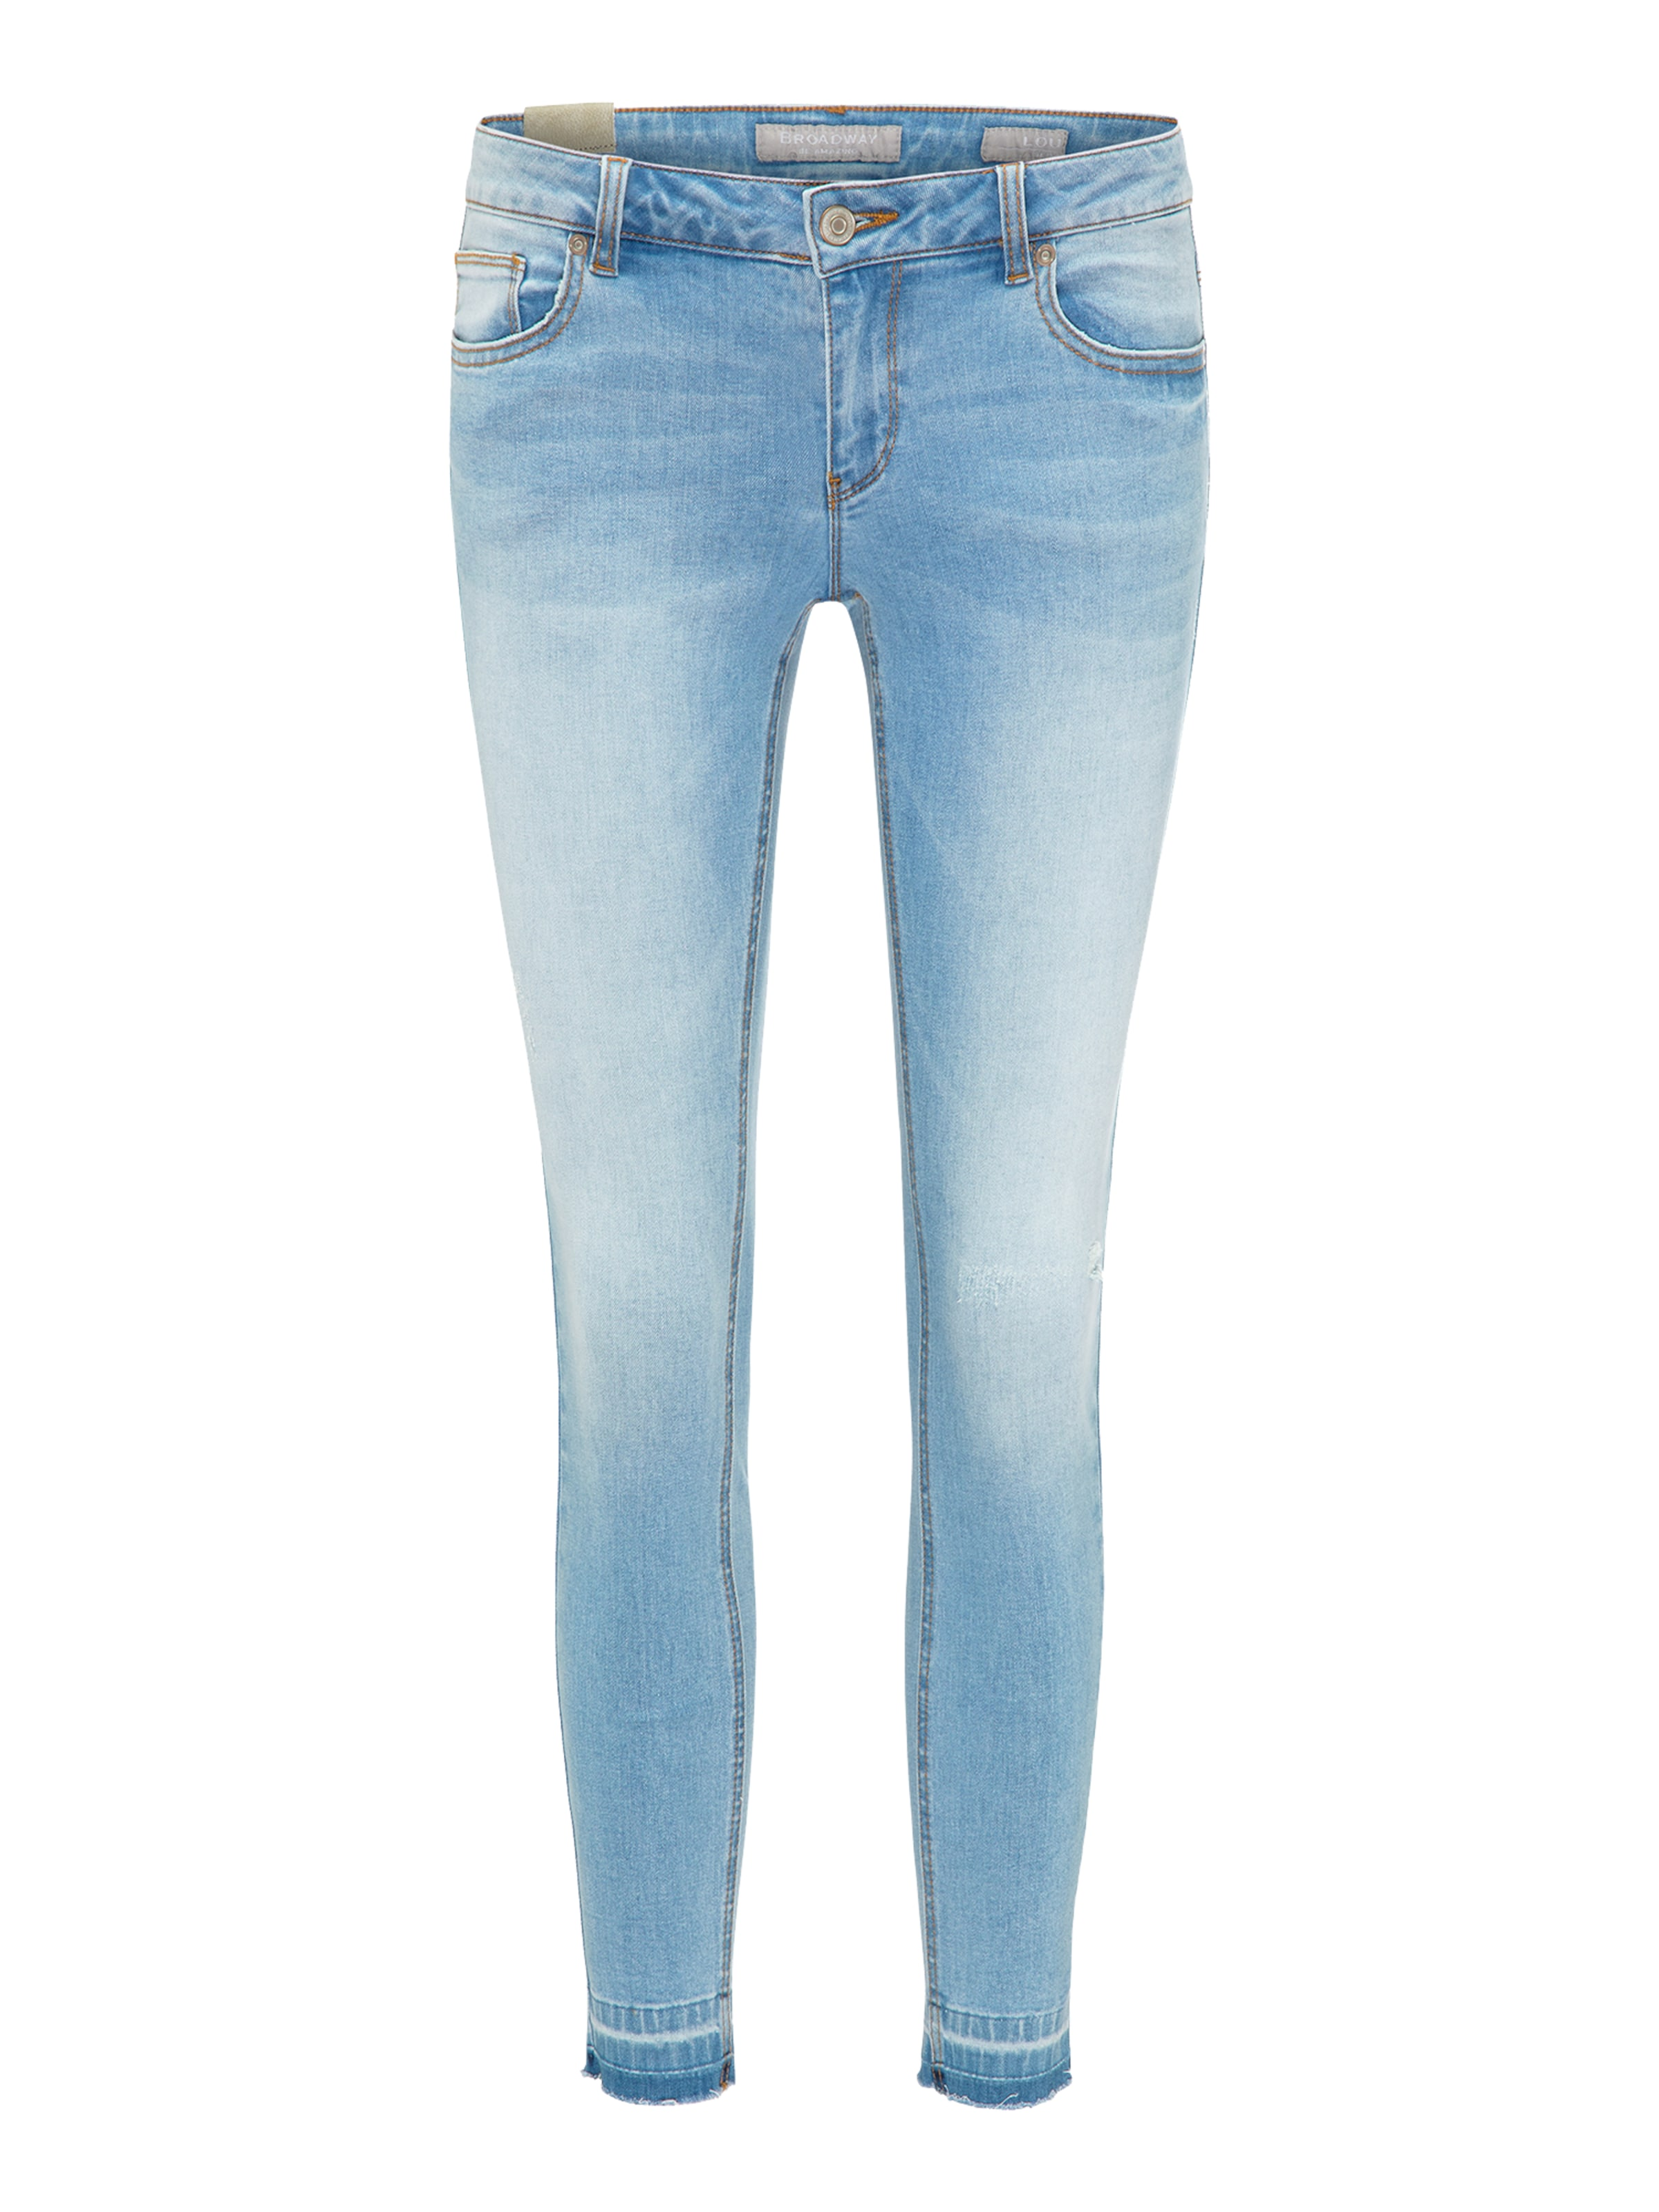 Jeans 'jeans Blue Denim Broadway Fashion Lou' In Nyc SzVGpqMLU